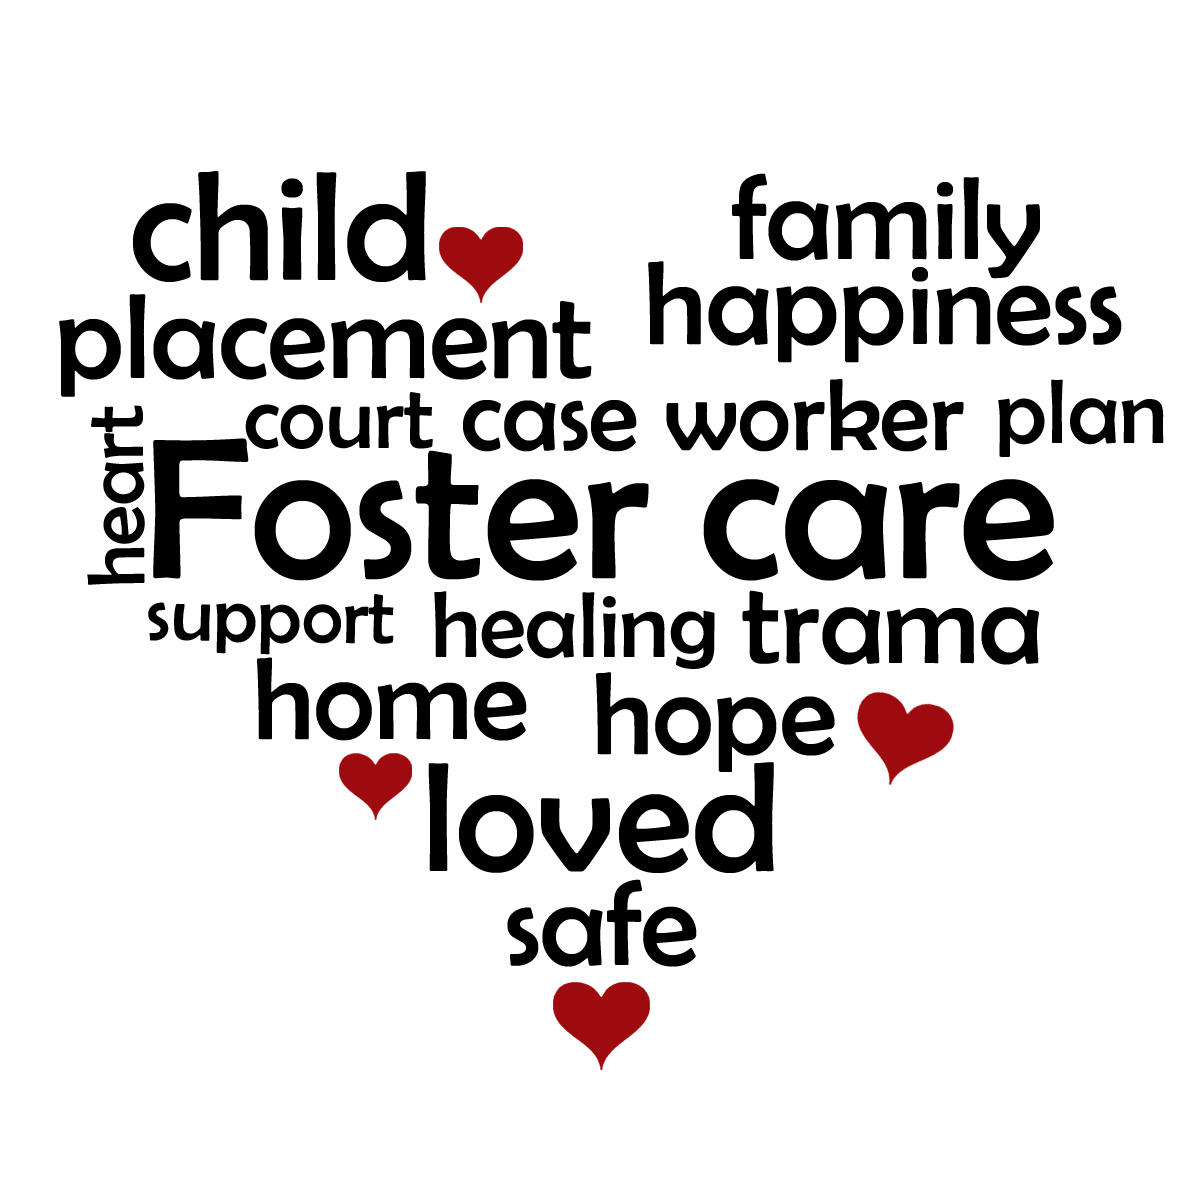 Foster Care Quotes Fascinating Got Questions About Foster Care And Adoptions We Have Answers